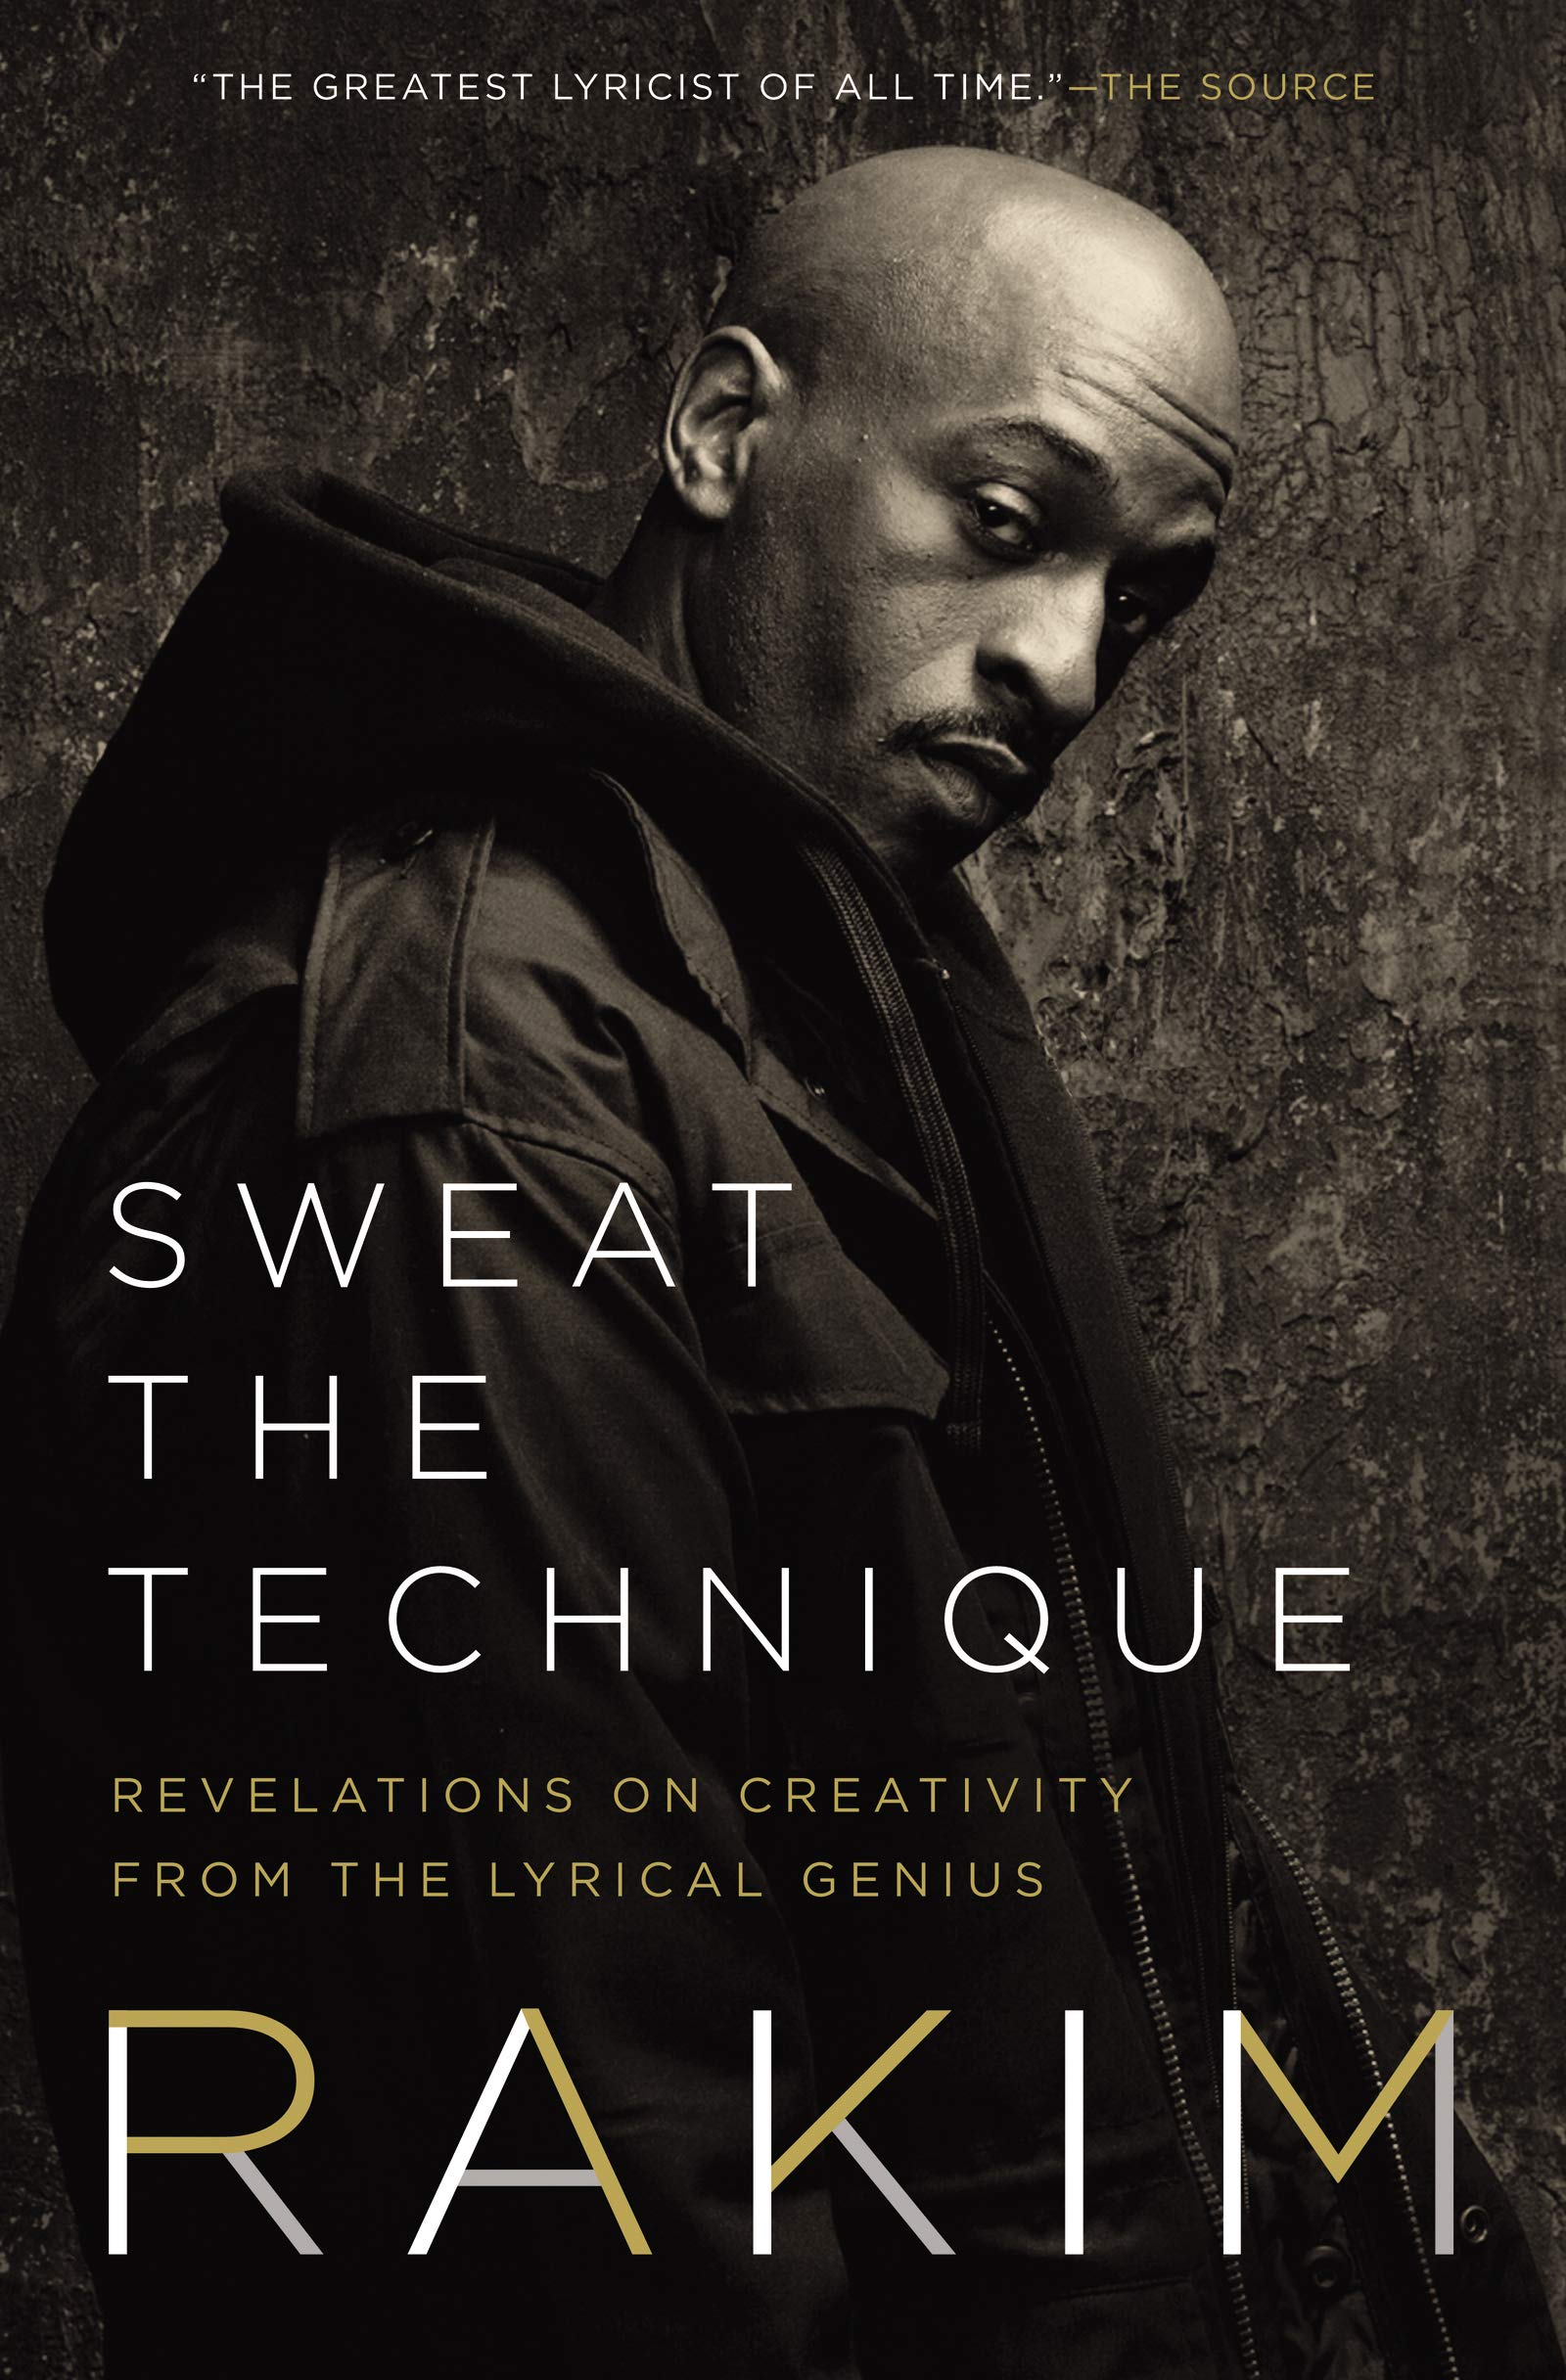 Sweat the Technique: Revelations on Creativity from the Lyrical Genius by Amistad